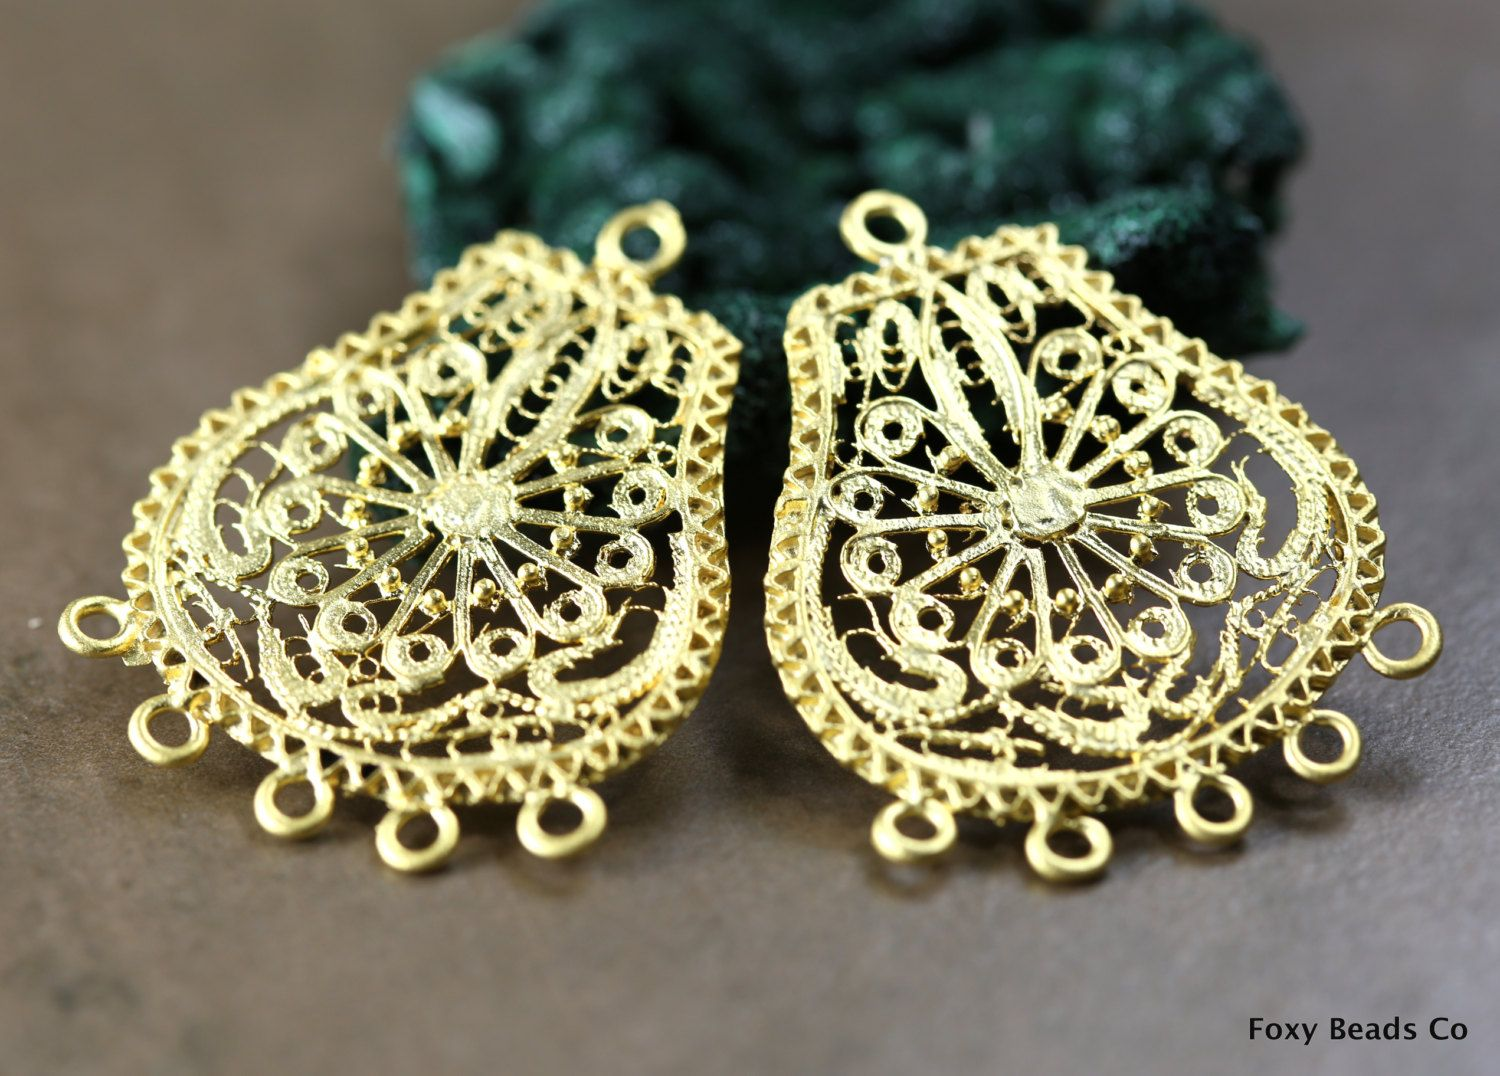 Indian style filigree chandelier earring component large 2 pieces indian style filigree chandelier earring component large 2 pieces pendant 24k gold plated earring components arubaitofo Image collections